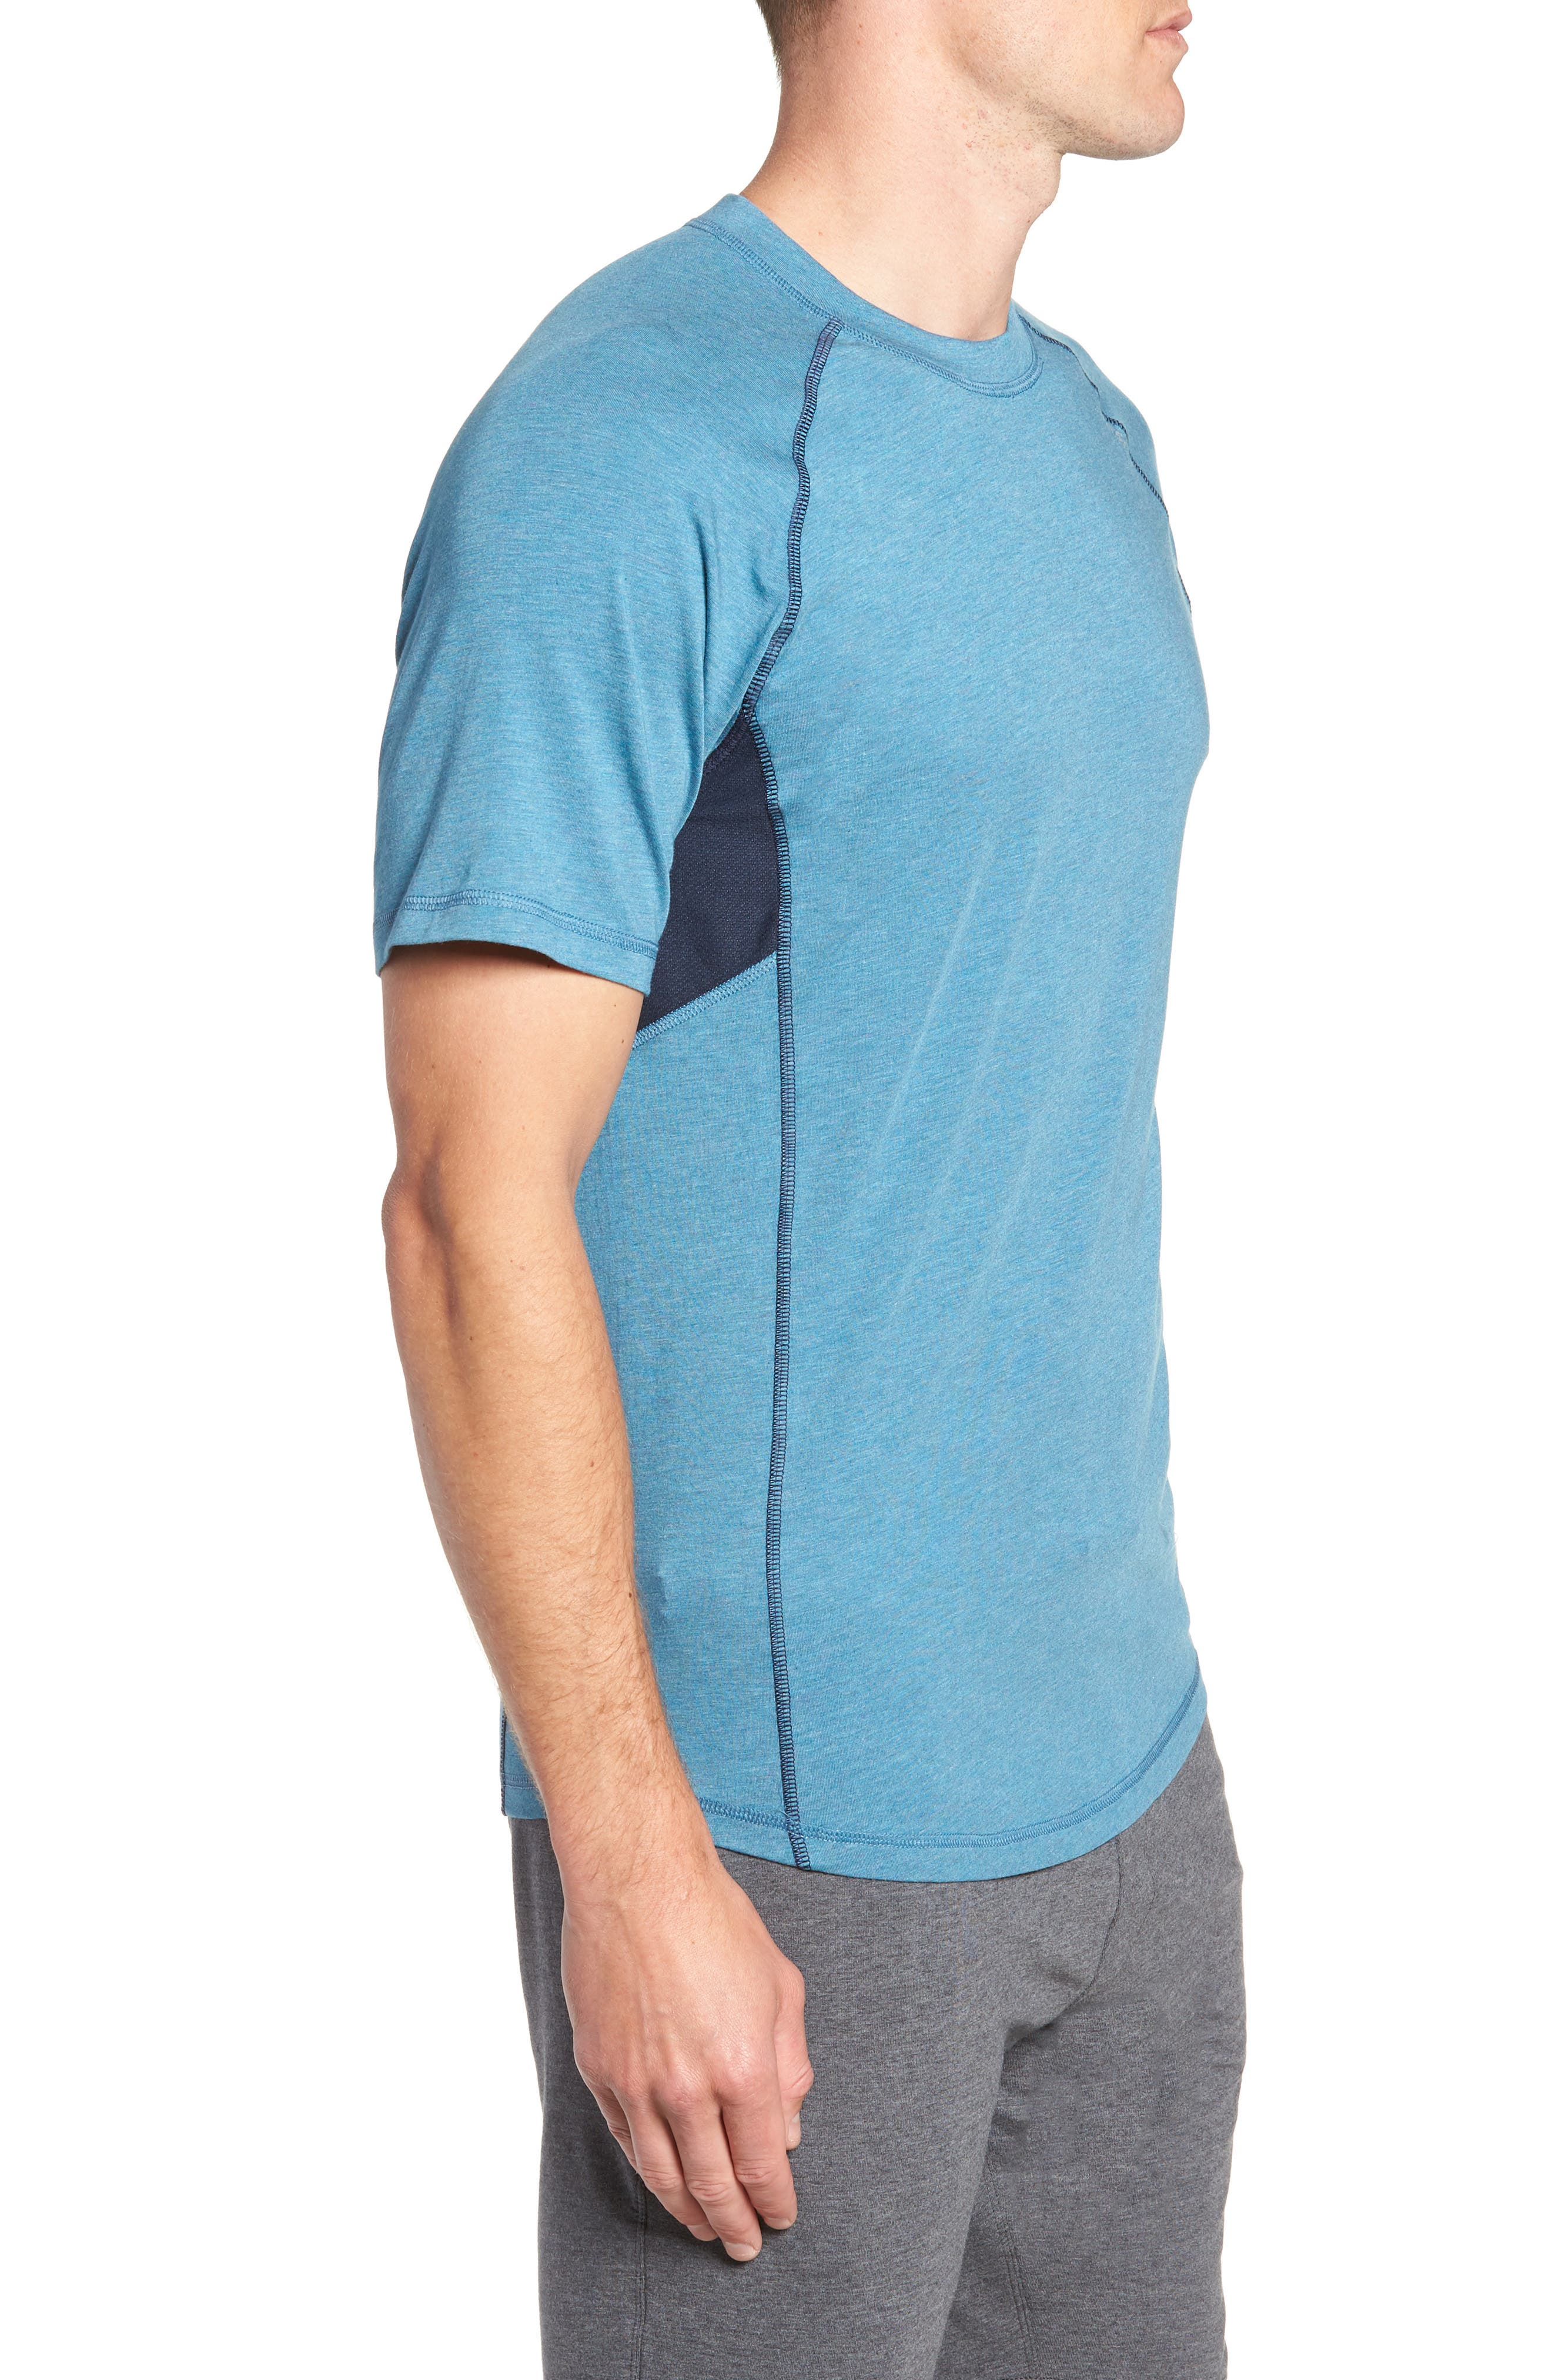 TASC PERFORMANCE, Charge II T-Shirt, Alternate thumbnail 4, color, TRANQUILITY SEA HEATHER